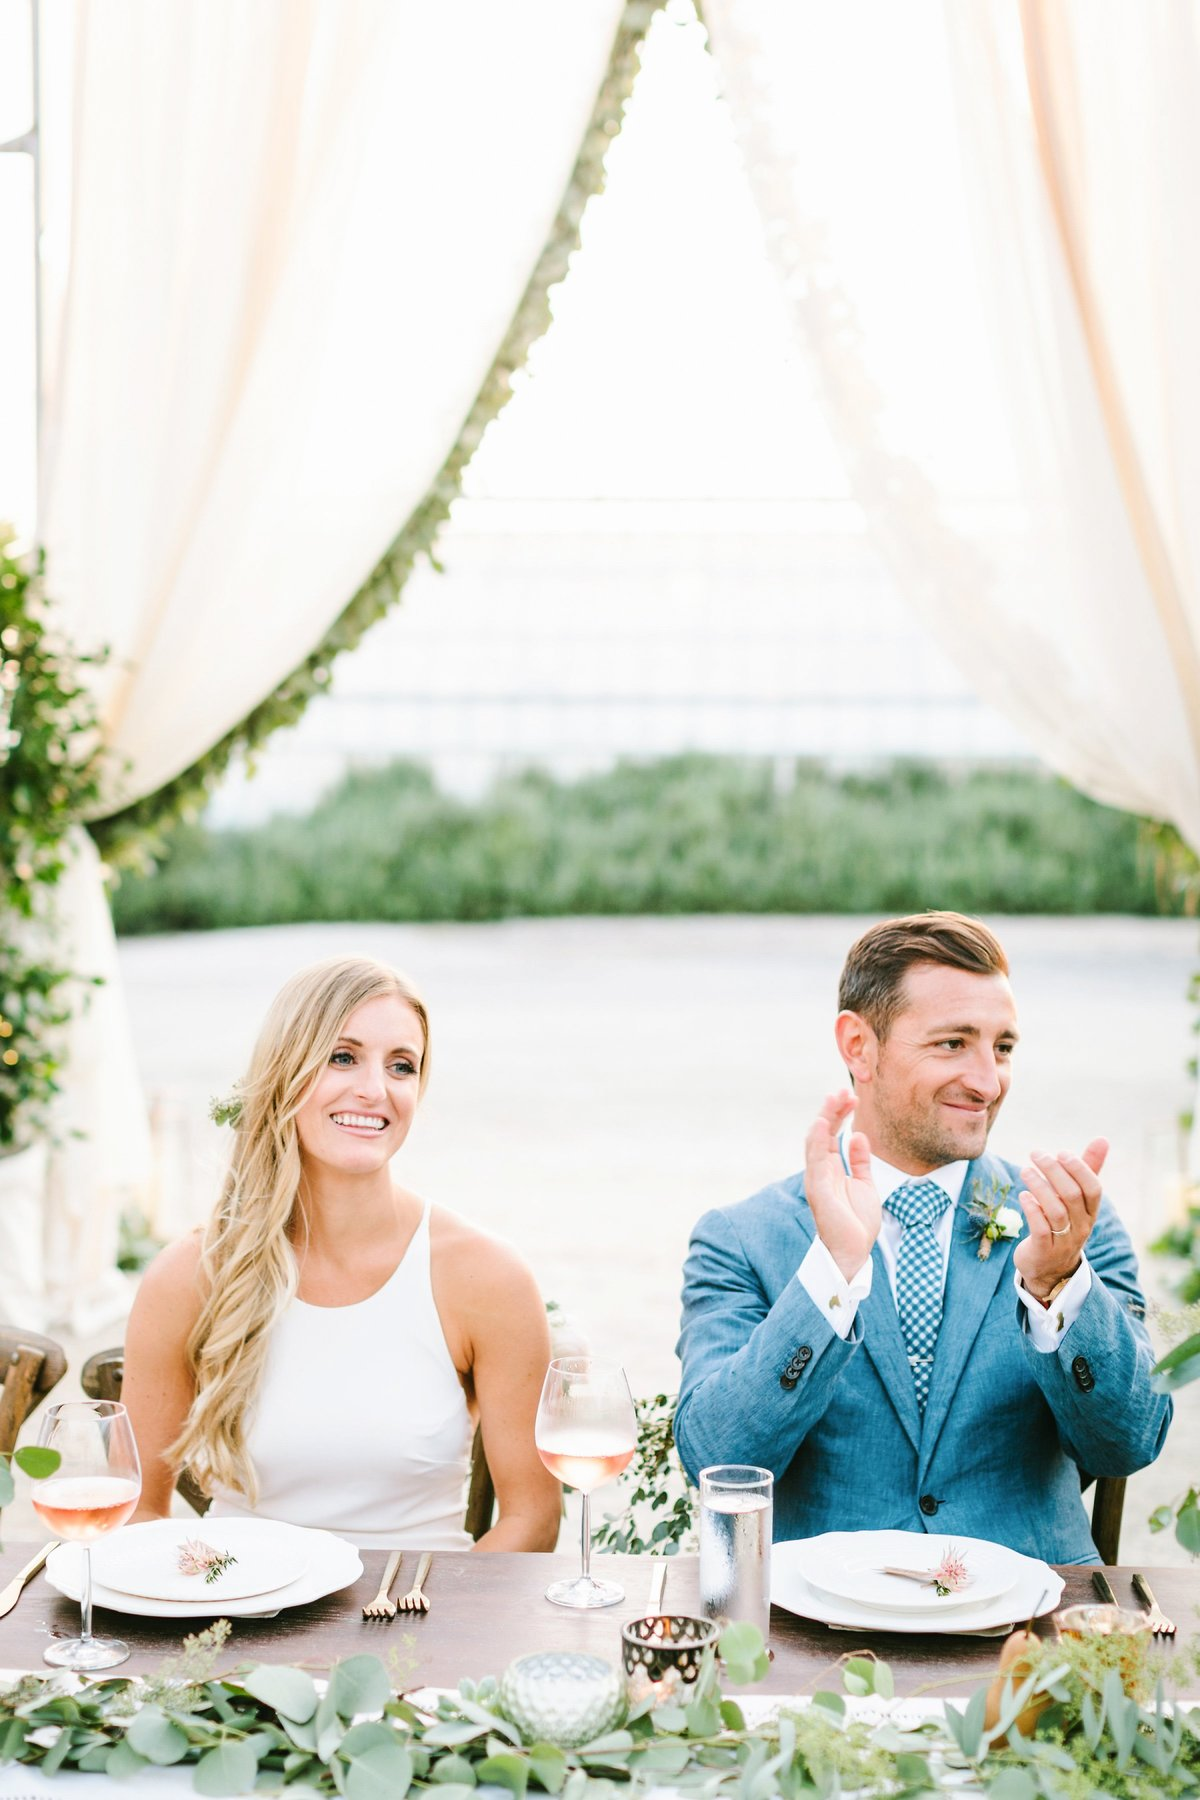 Best California Wedding Photographer-Jodee Debes Photography-165